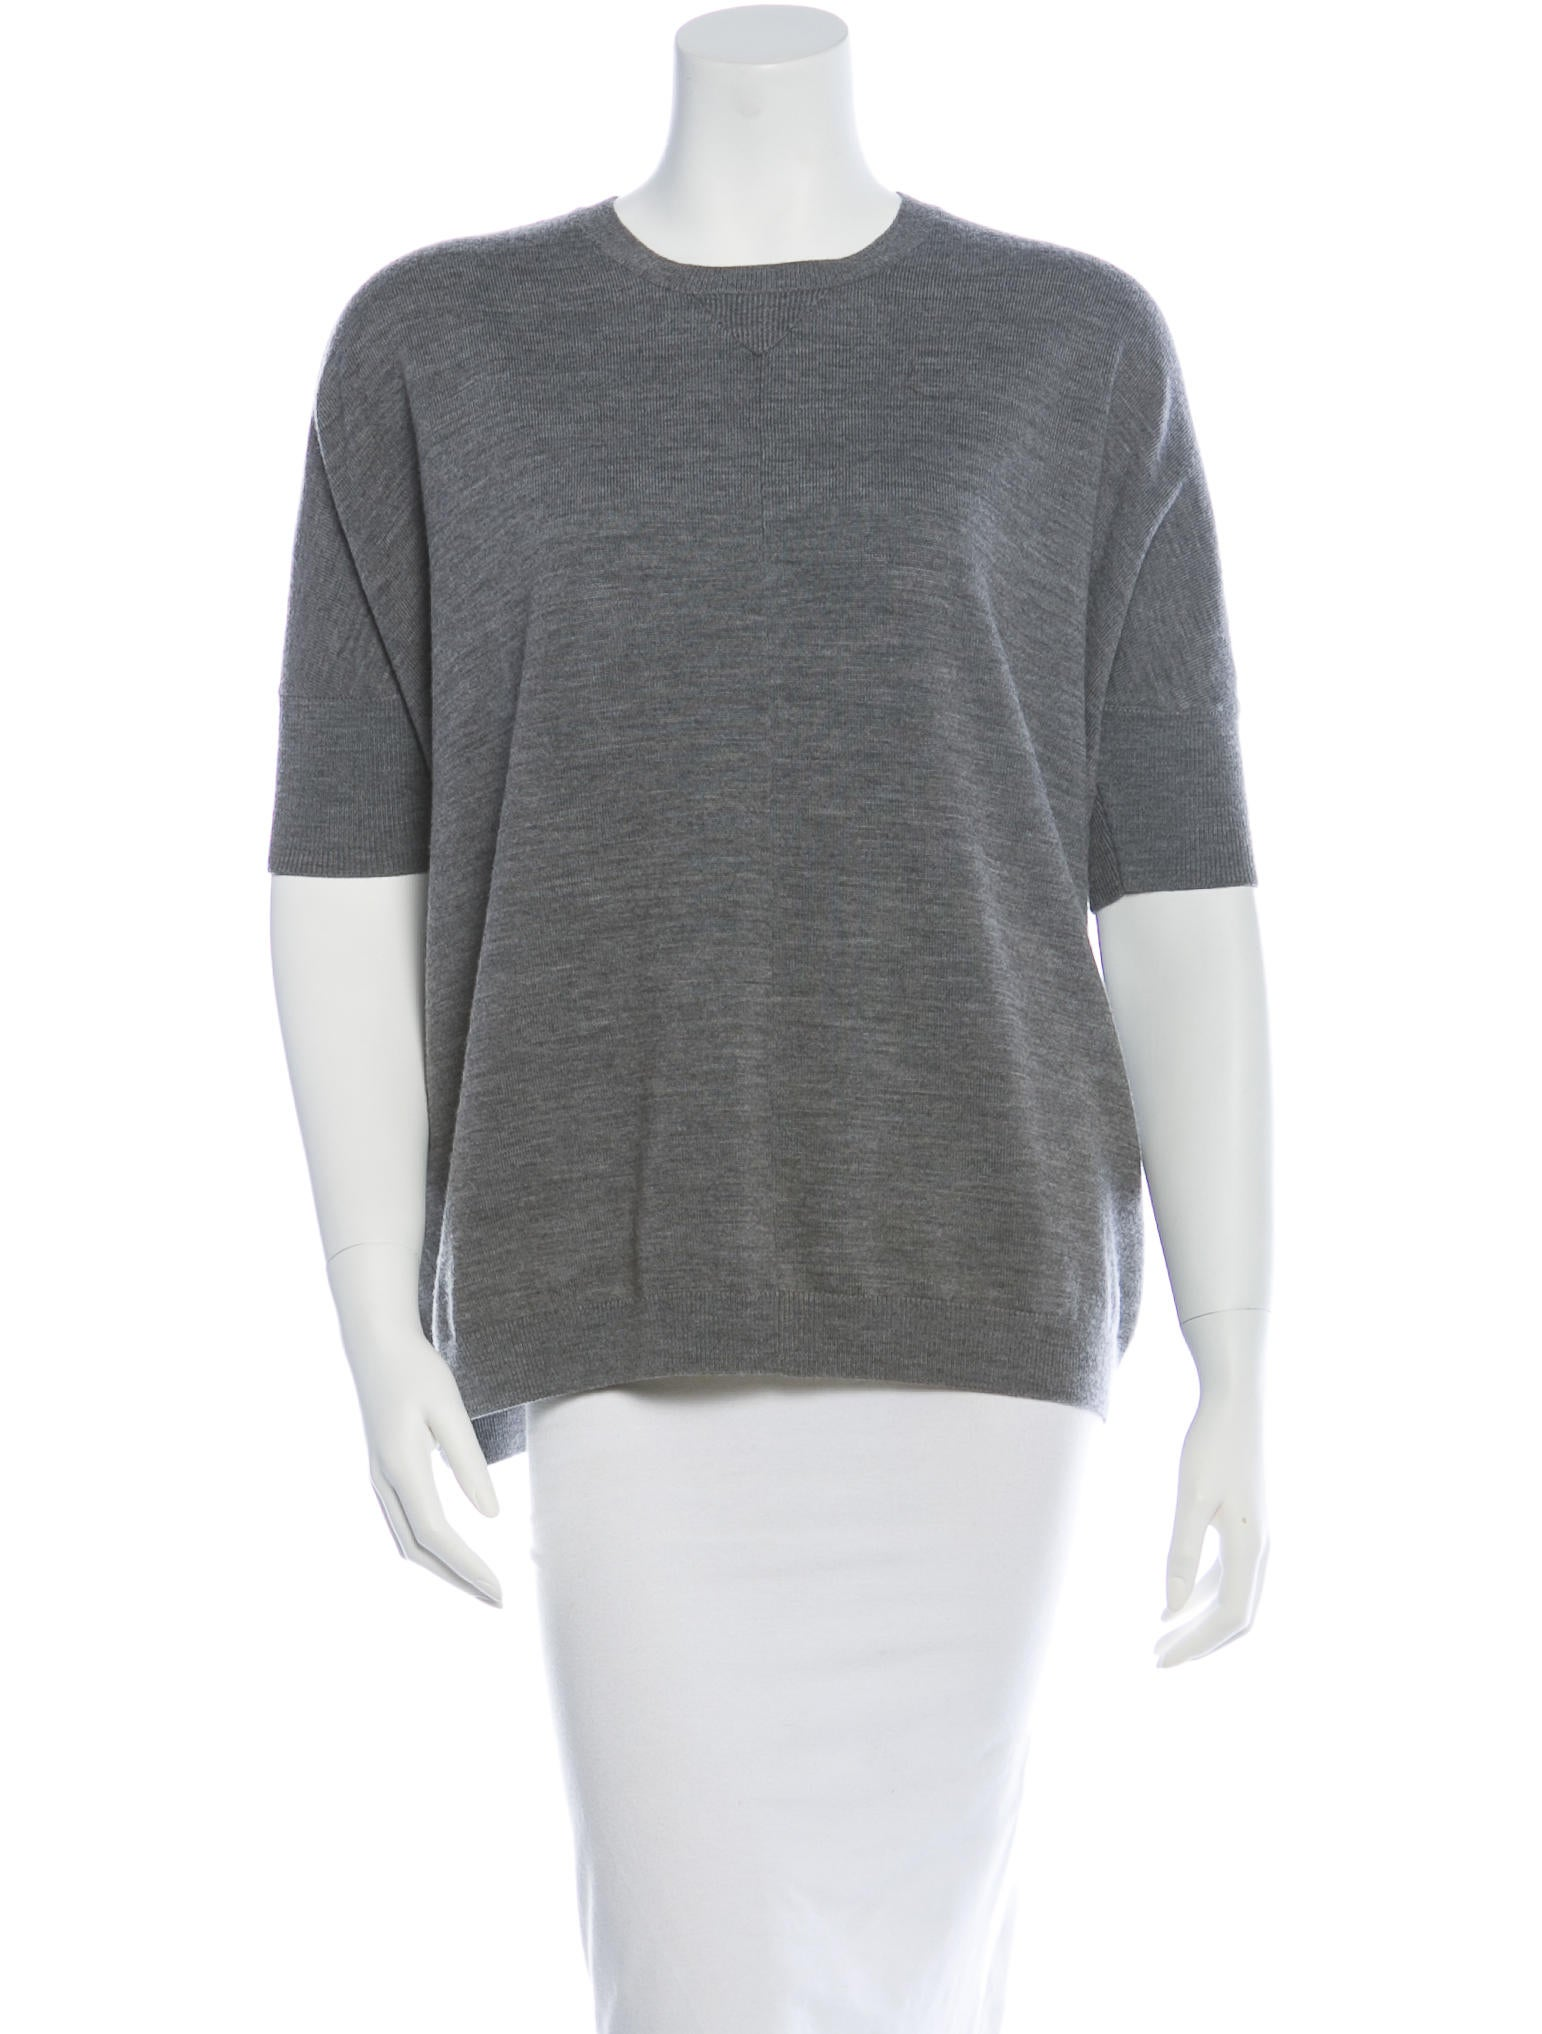 Reed krakoff merino wool short sleeve sweater clothing for Merino wool shirt womens